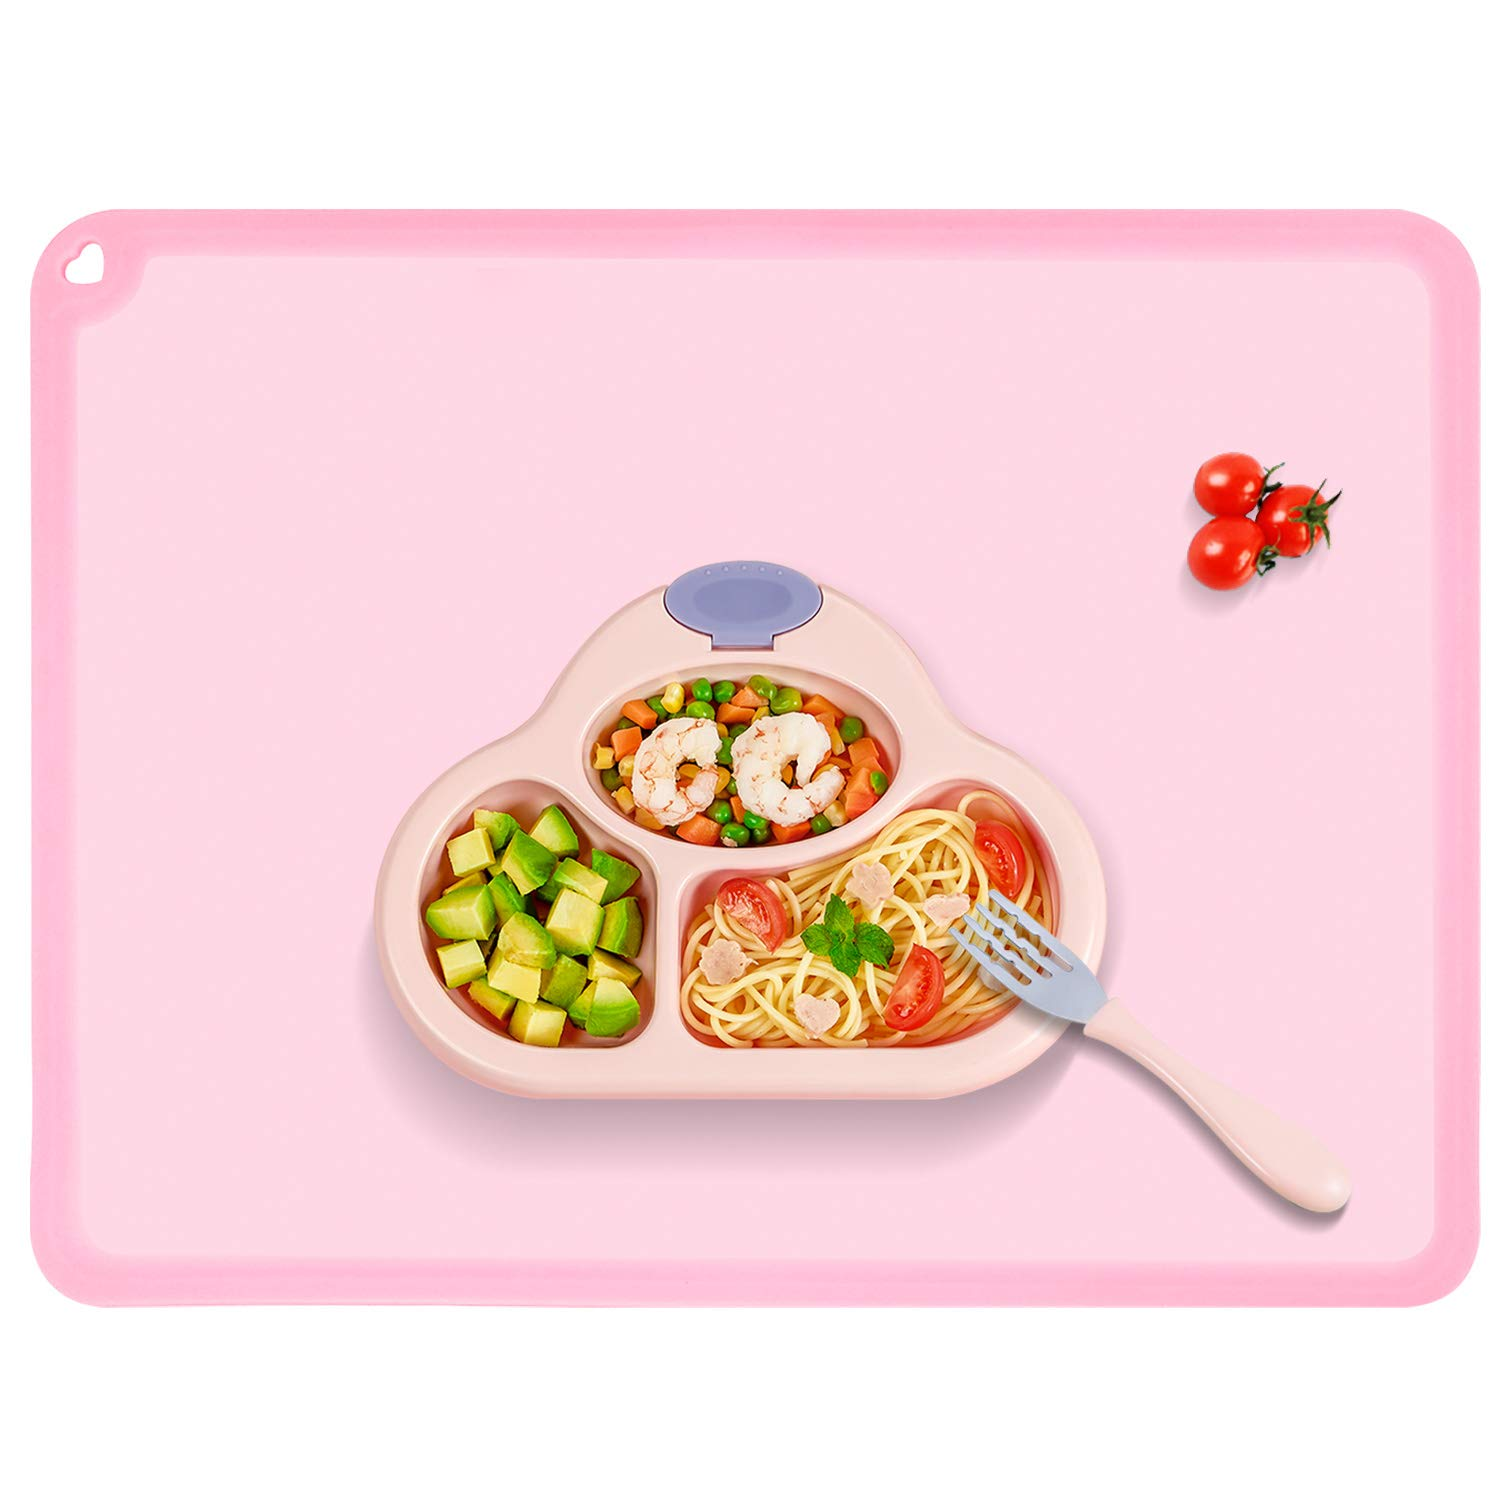 Silicone Kids Placemat, Non-Slip Reusable Placemats for Kids, Baby Dining Food Mat for Children Baby Toddler, Baby Pink